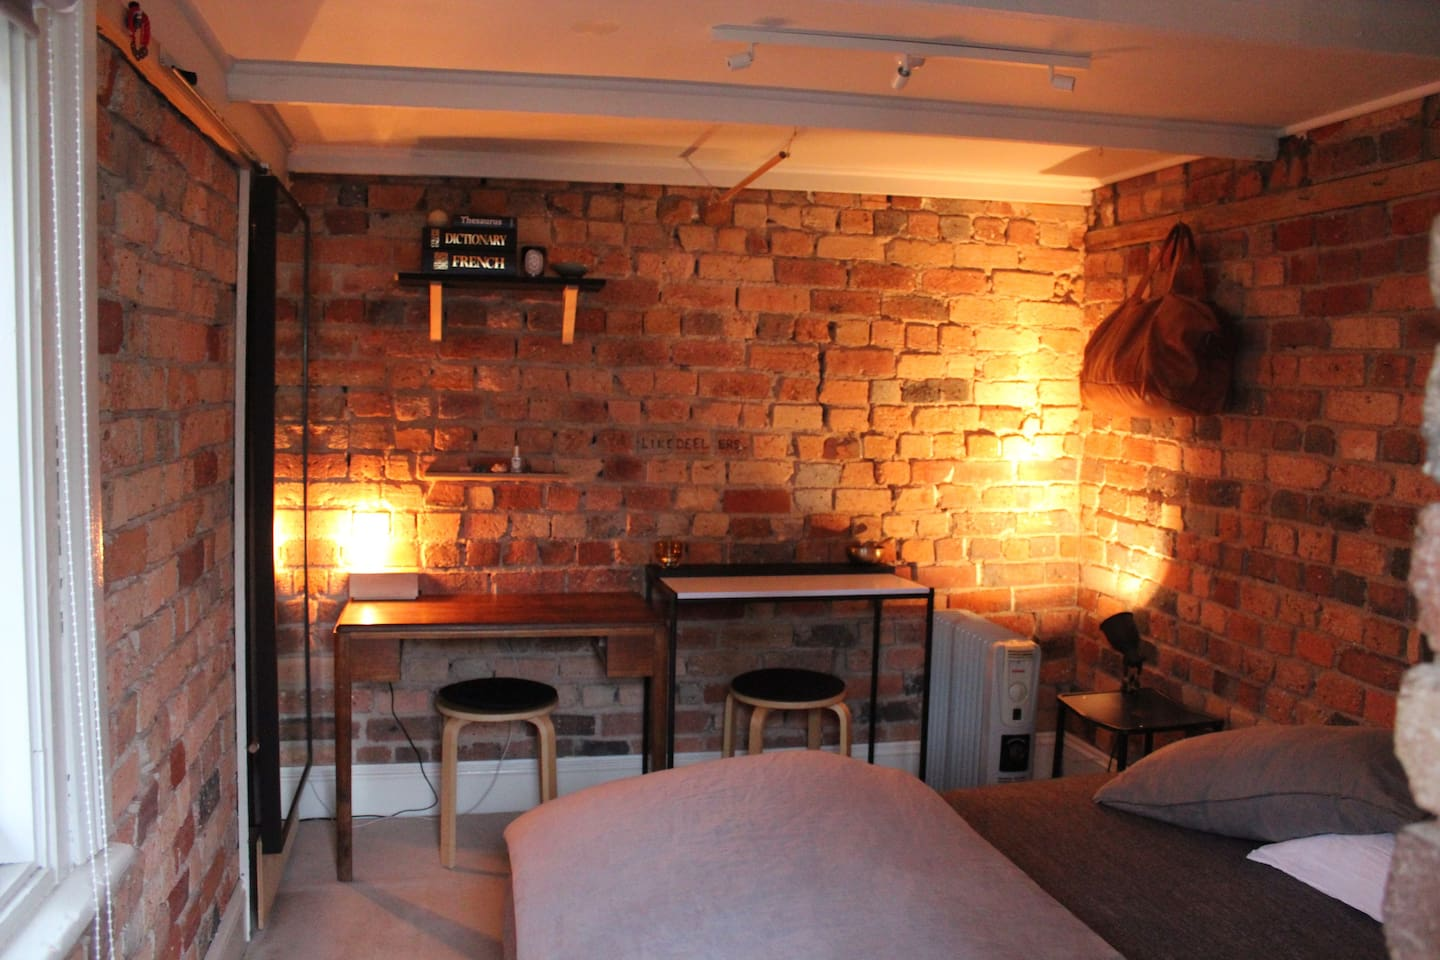 The room has a double bed and a writing desk